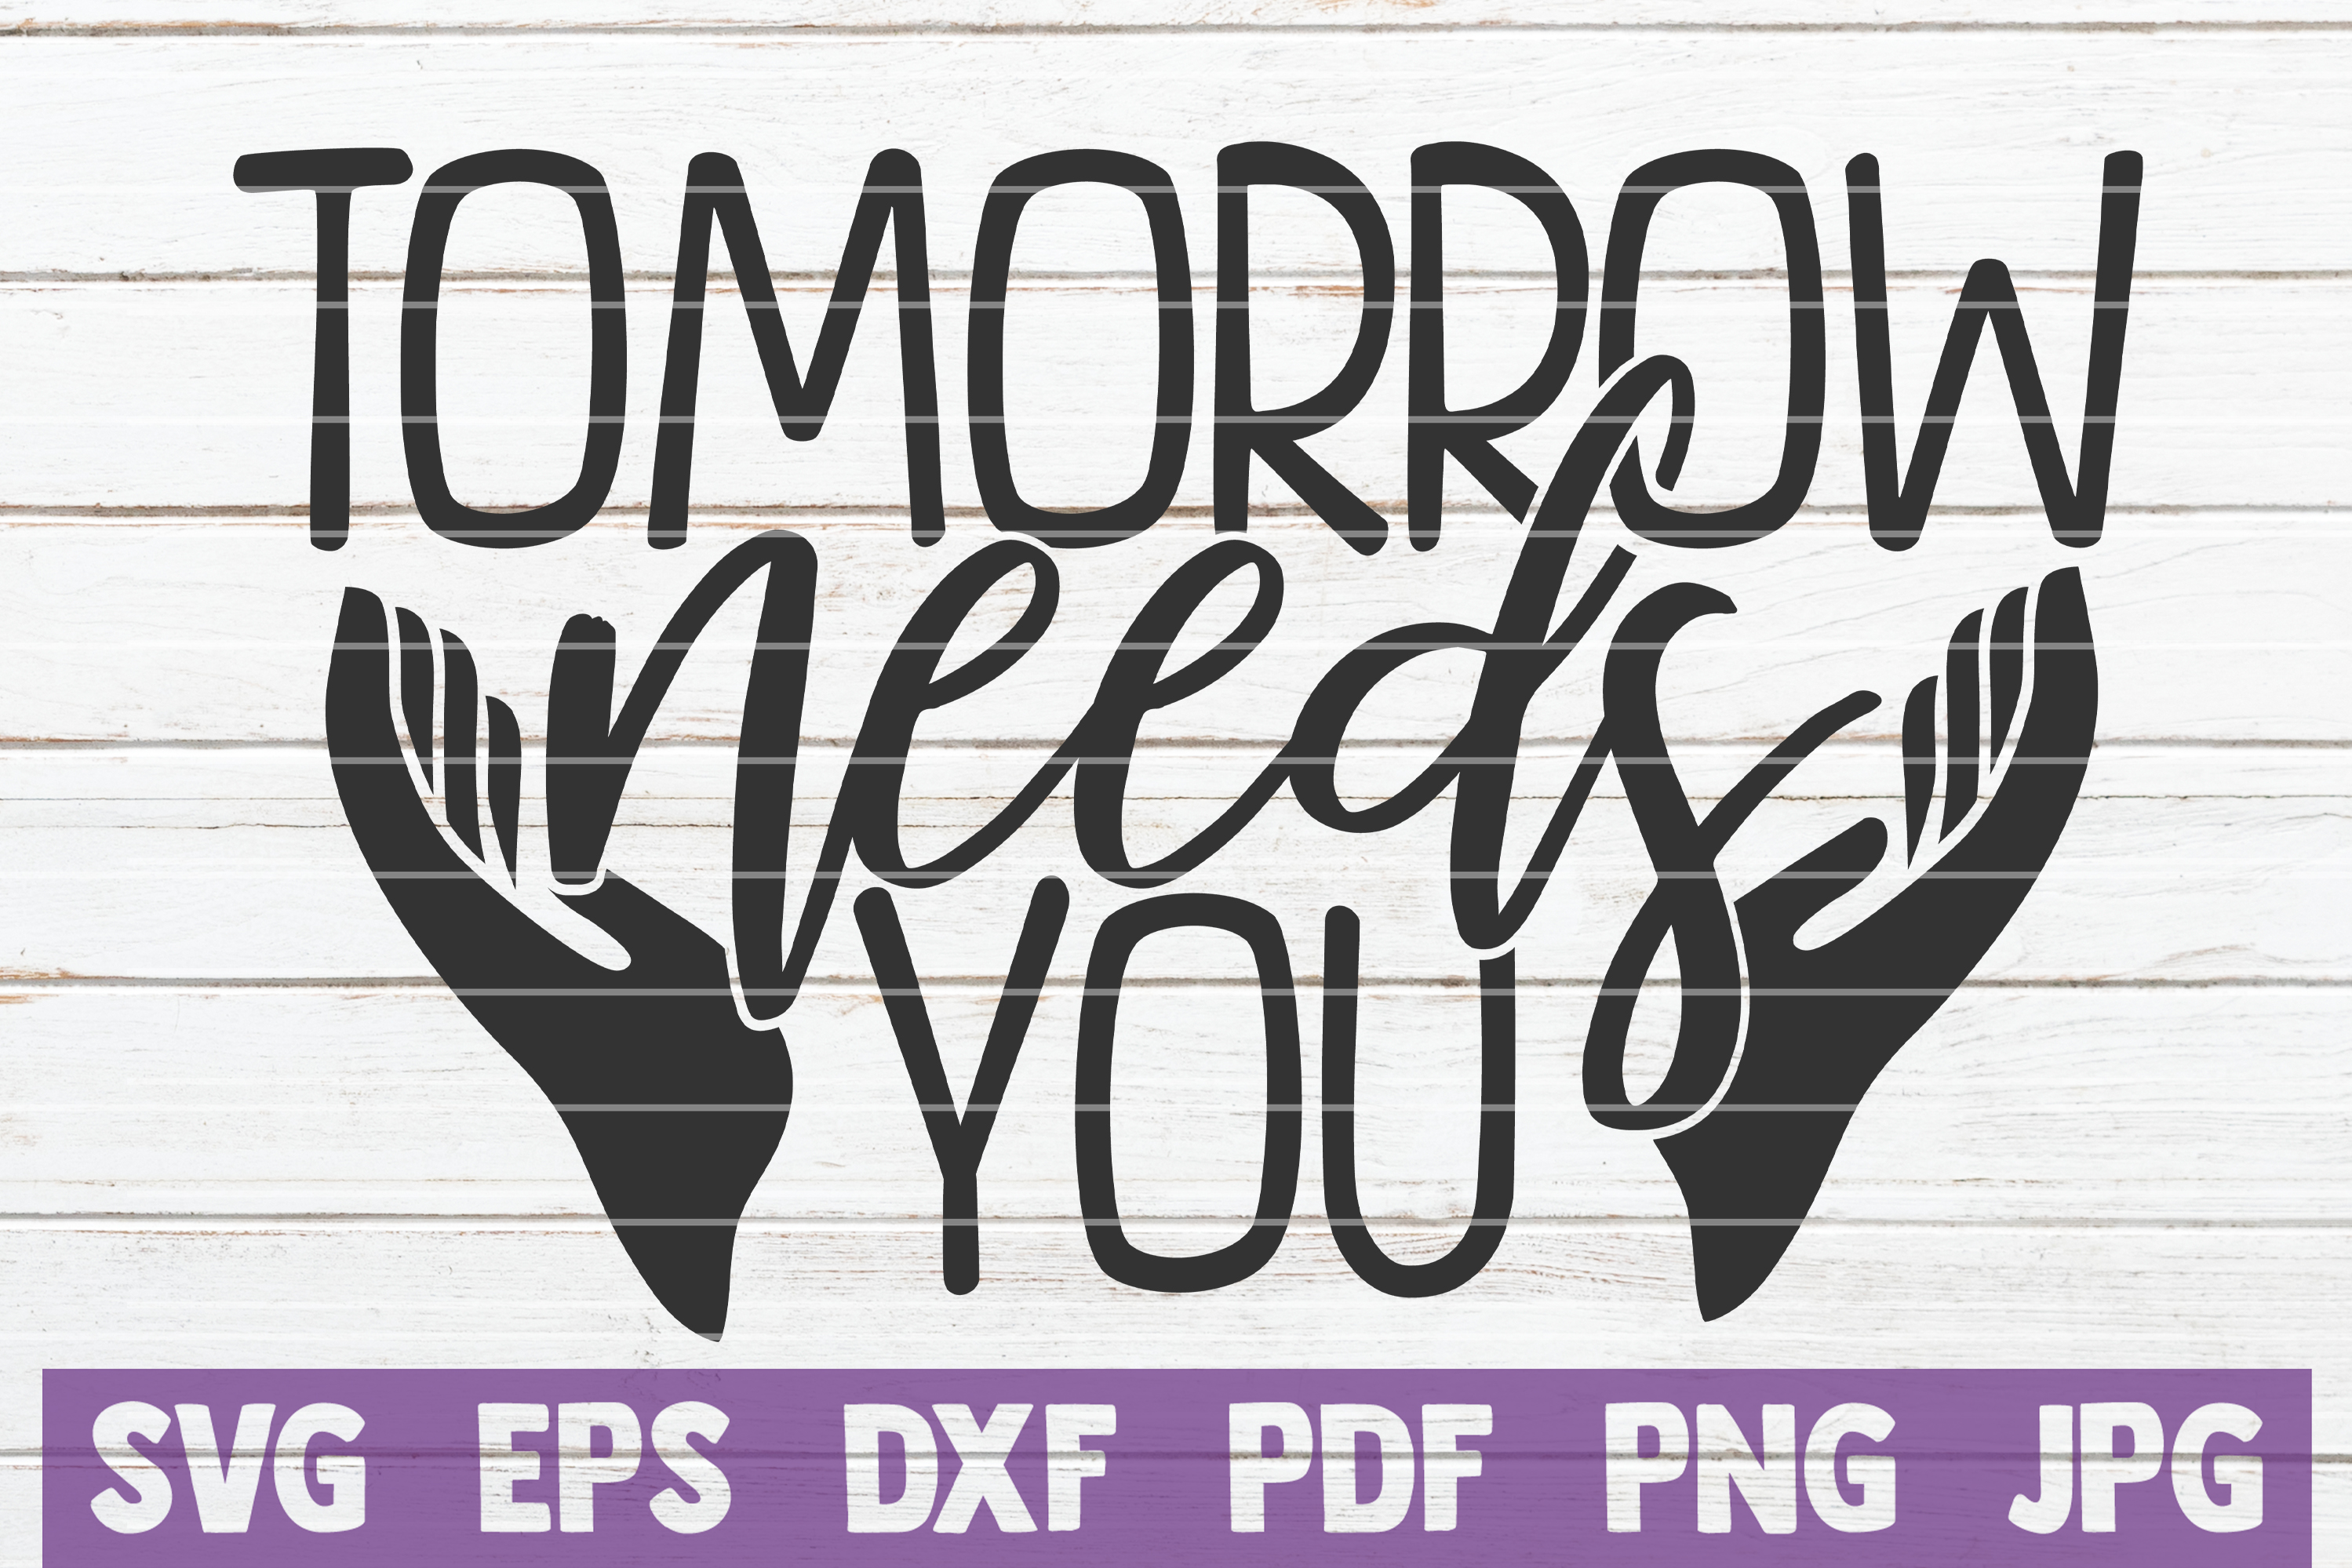 Download Free Tomorrow Needs You Graphic By Mintymarshmallows Creative Fabrica for Cricut Explore, Silhouette and other cutting machines.